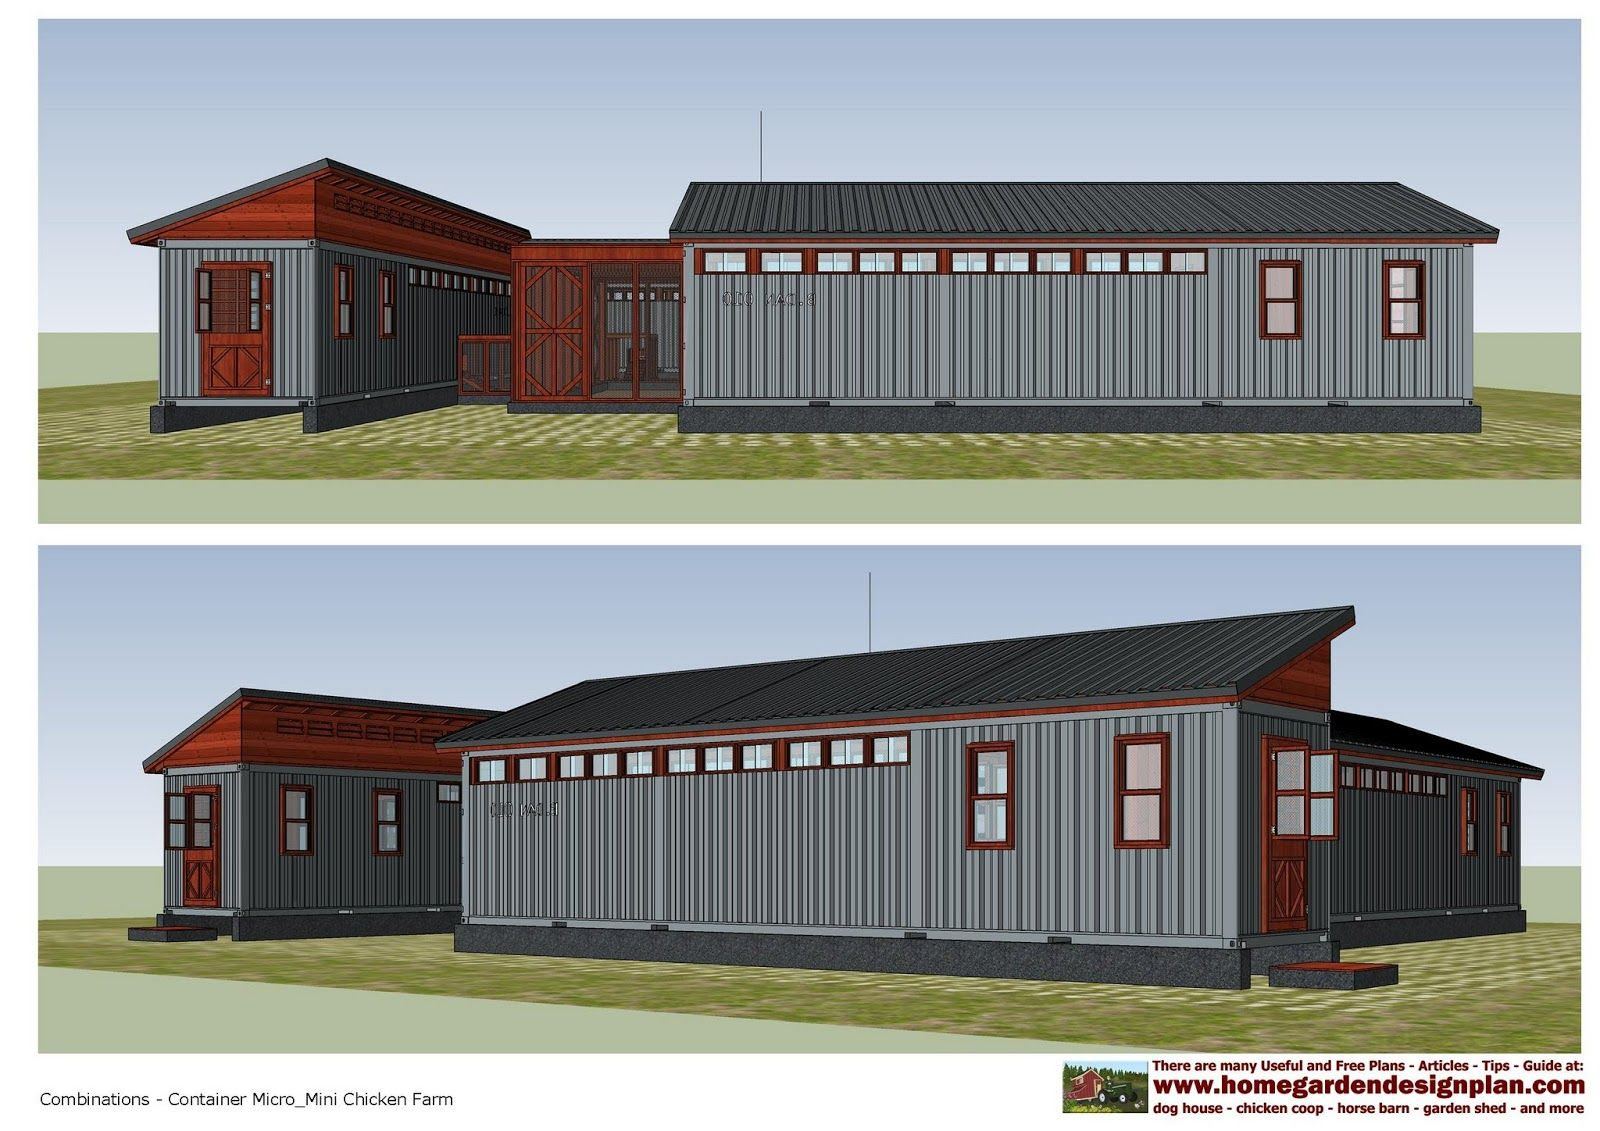 Container Home Design Free Html on mobile home designs, container home mansion, container home plans, cheap home designs, container house, container home layouts, small home designs, yurts designs, barn home designs, container home info, container hotels, container home blueprints, container home interior, container home roof, container home videos, wooden house designs, pallet home designs, container home bedrooms, 12 foot house designs, container home siding,